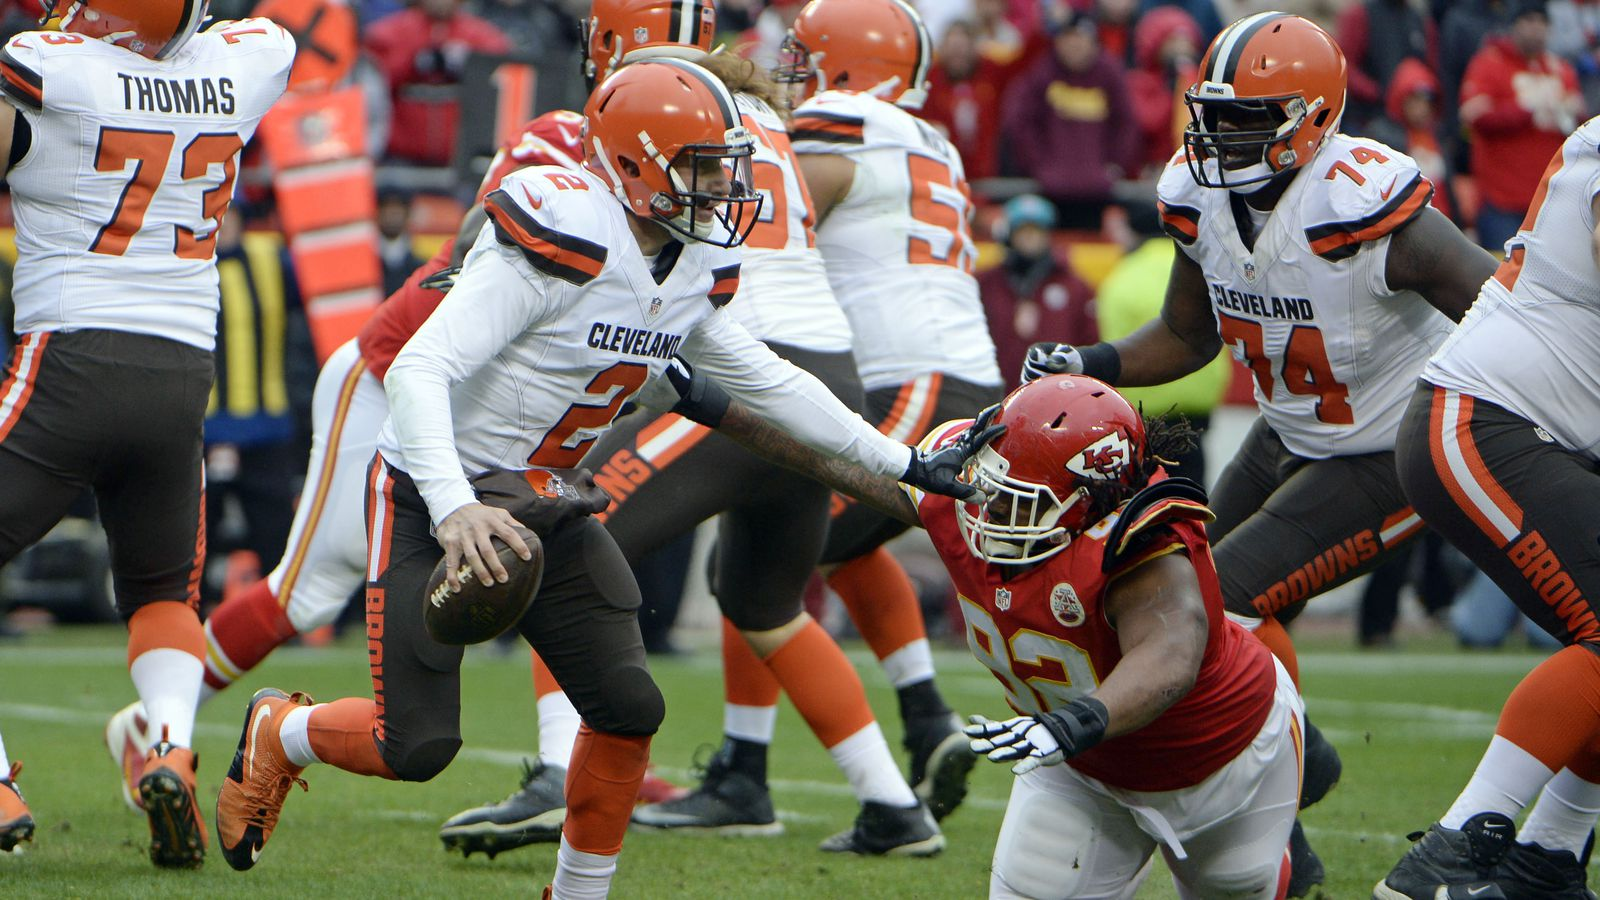 cleveland browns vs kansas city chiefs 4th quarter game